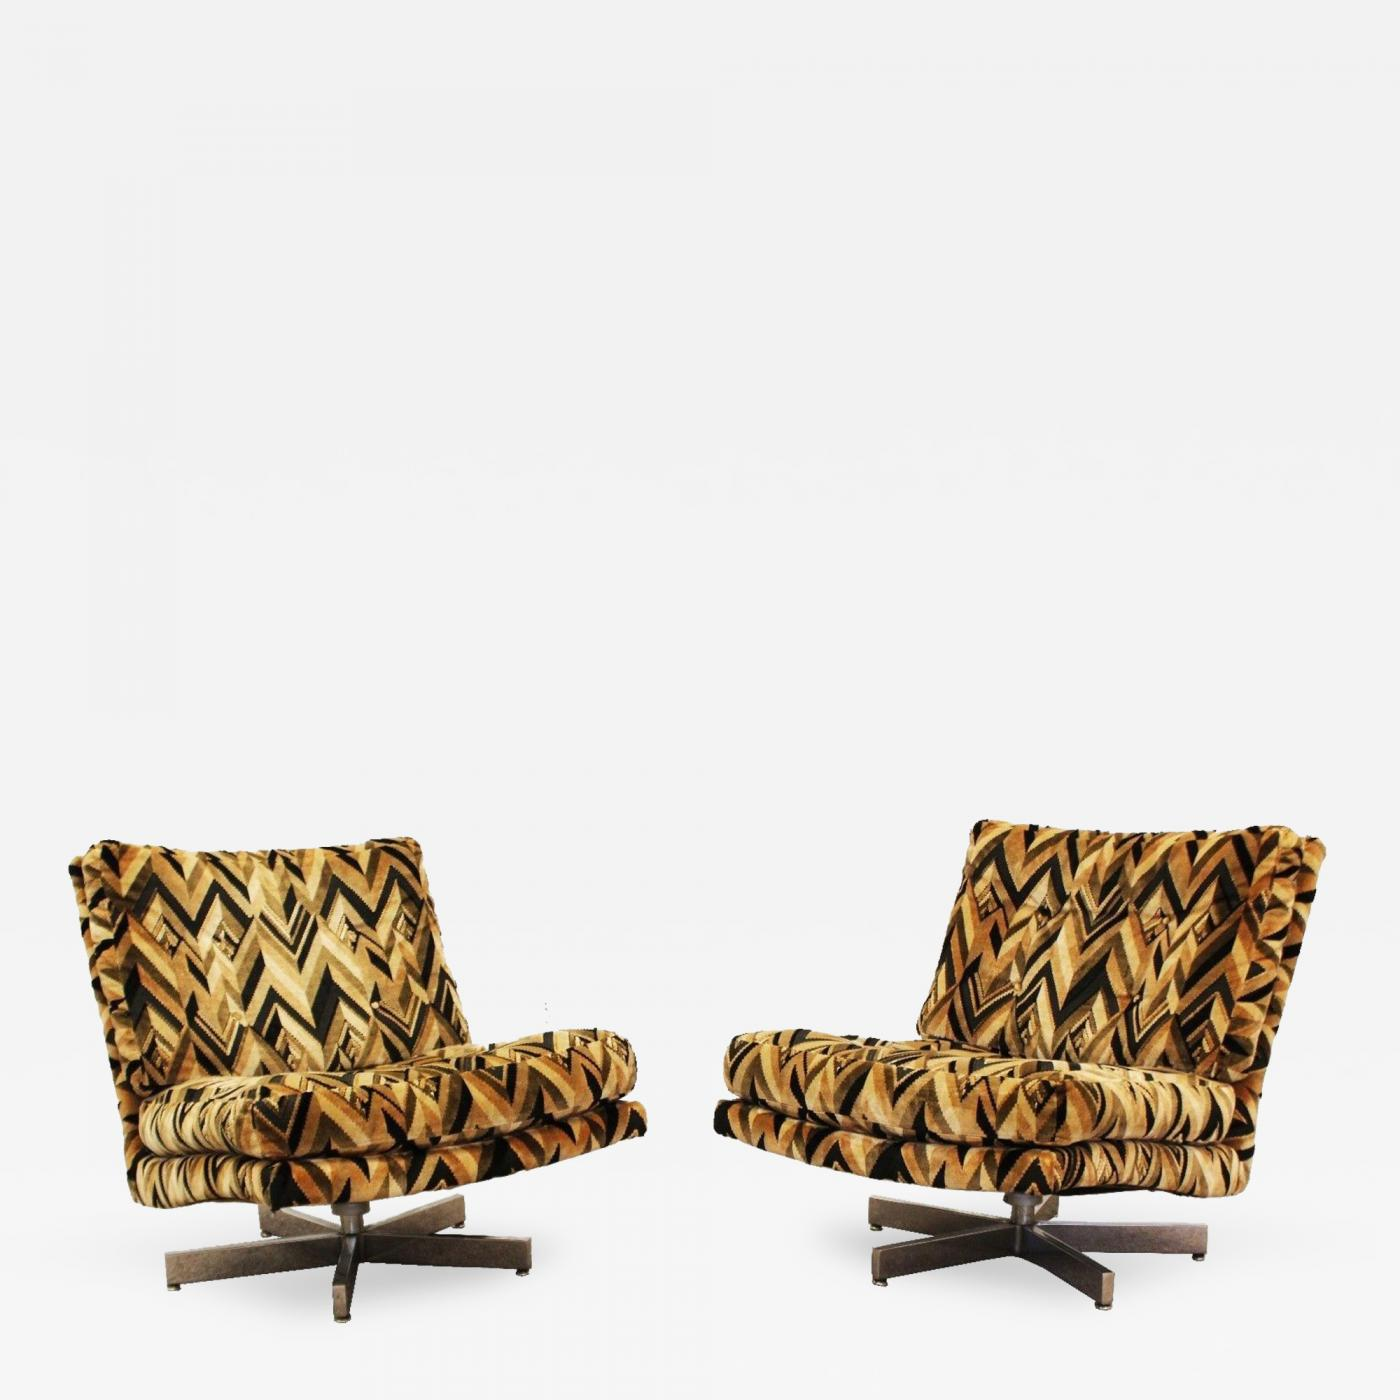 Listings / Furniture / Seating / Slipper Chairs